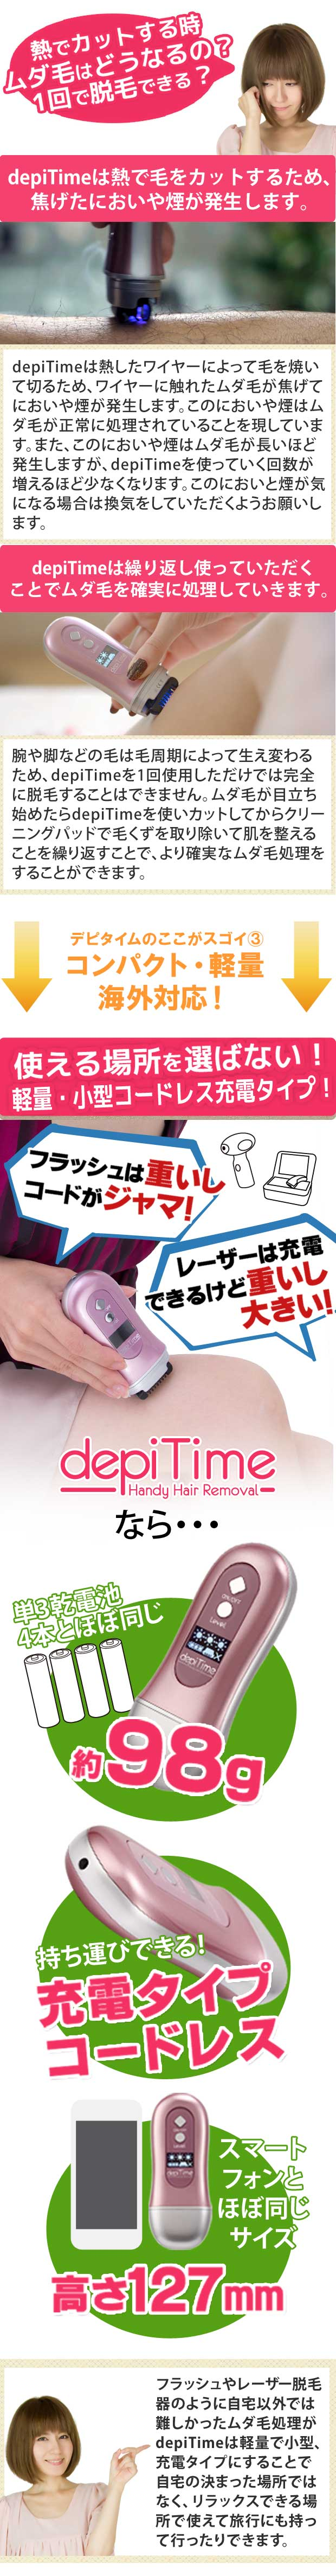 / depiTime / デピタイム doesn't hurt hair loss with nanoTime series home hair removal instrument hair processing mobile Compact cordless rechargeable ladies men's worldwide 16 countries sale decision! (T2) (S)